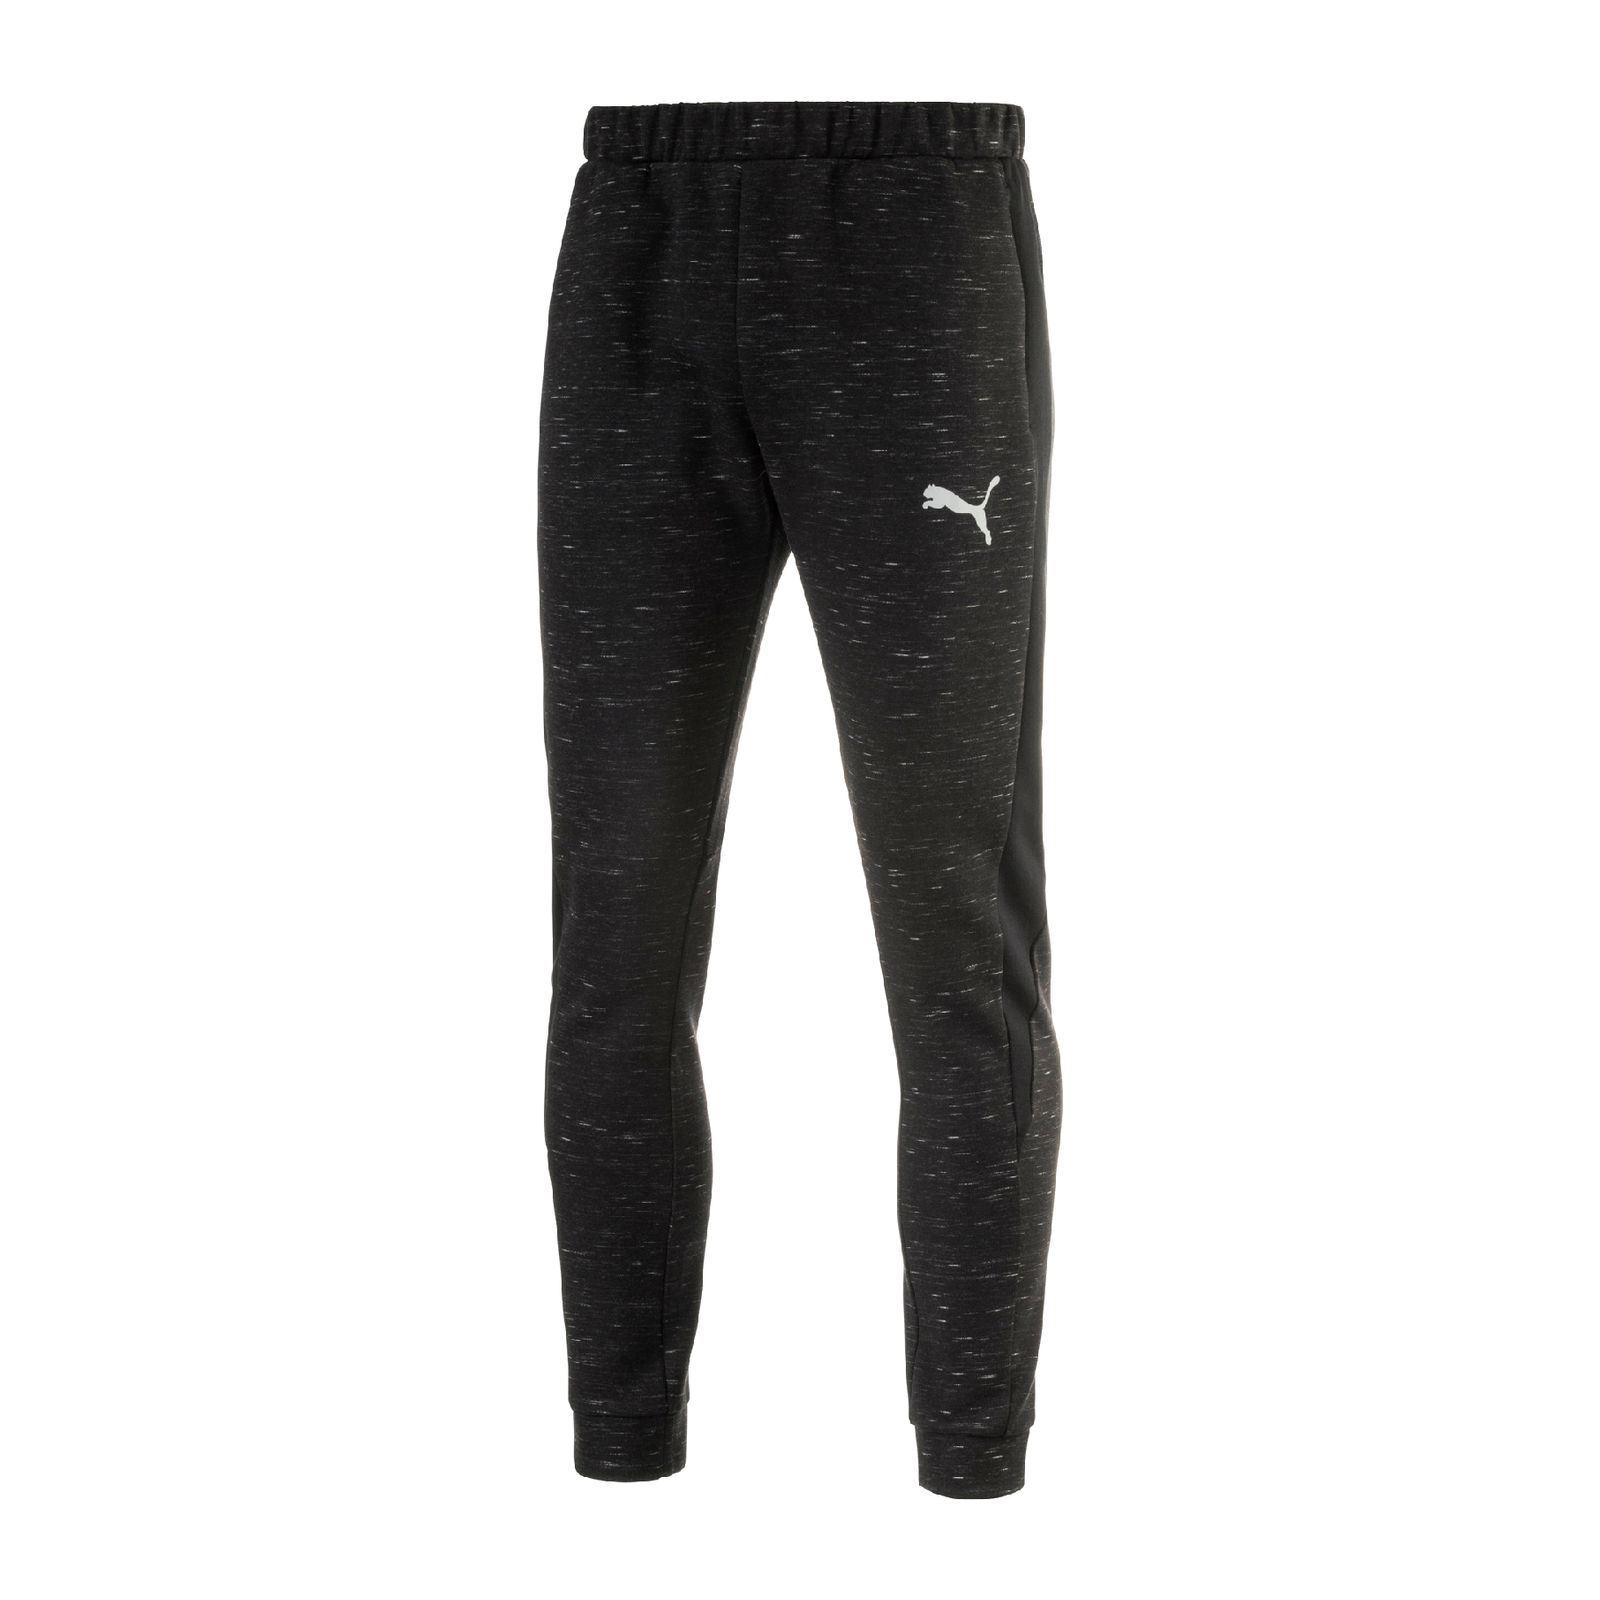 puma jogginghose anthrazit